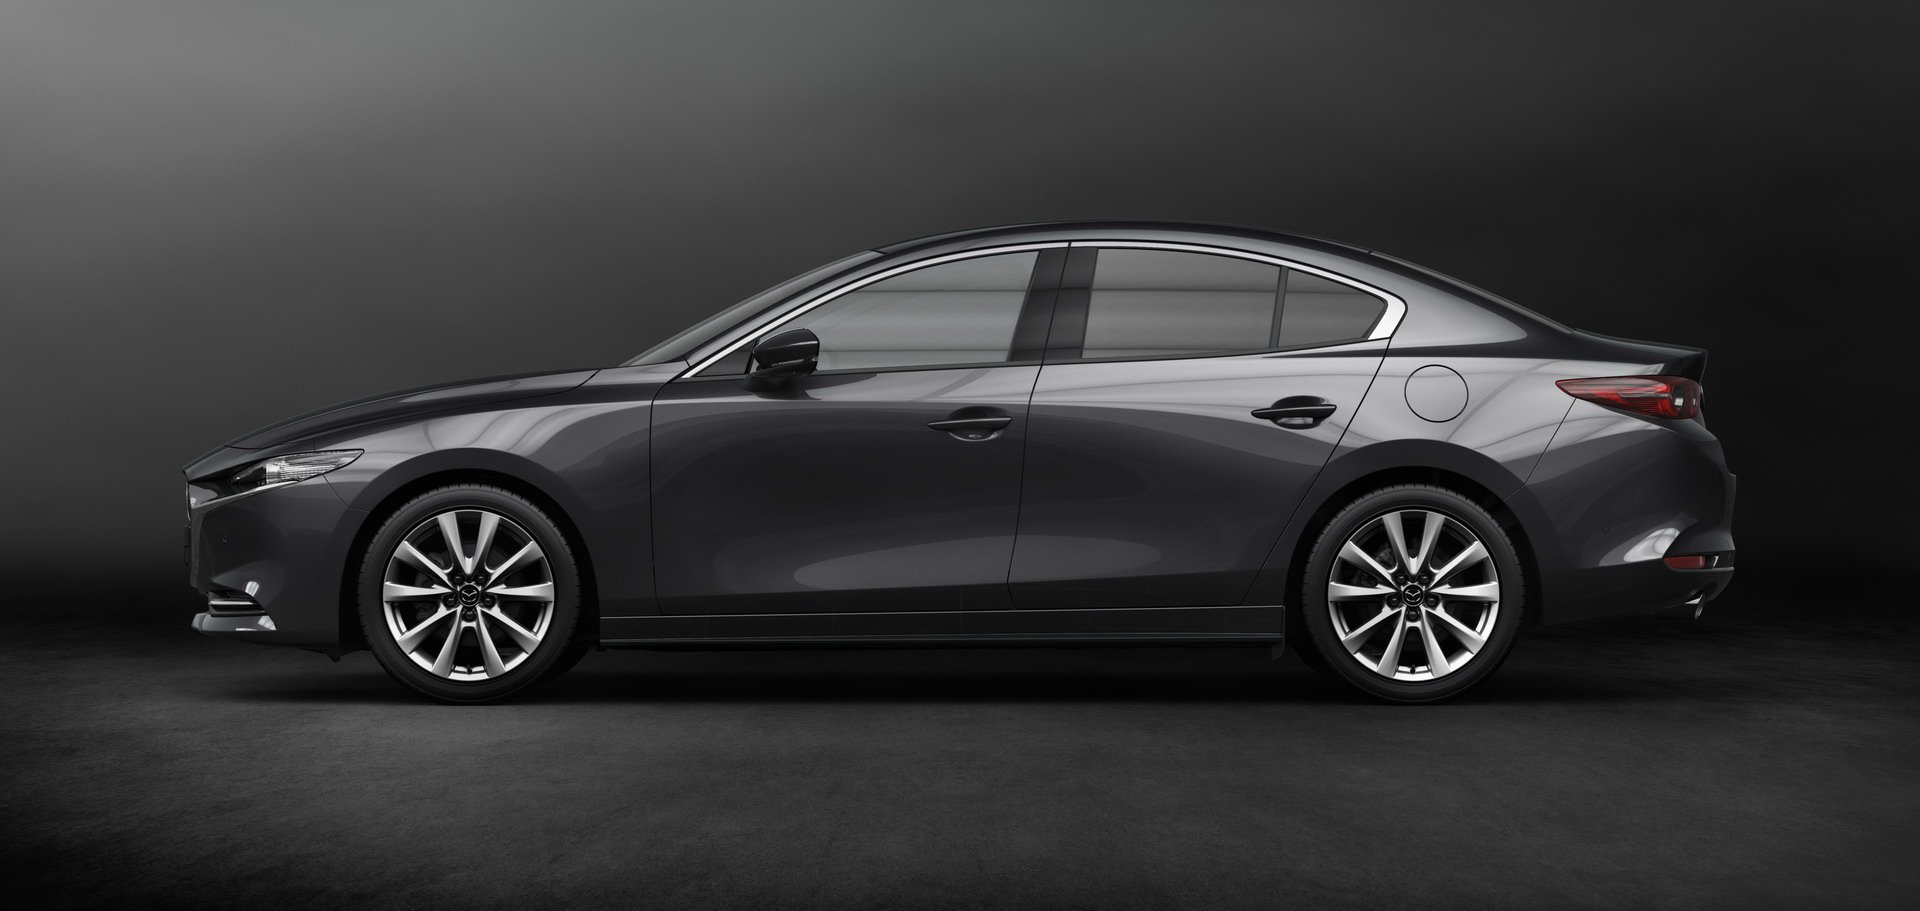 Mazda3 Hatchback and Mazda3 sedan 2019 (22)